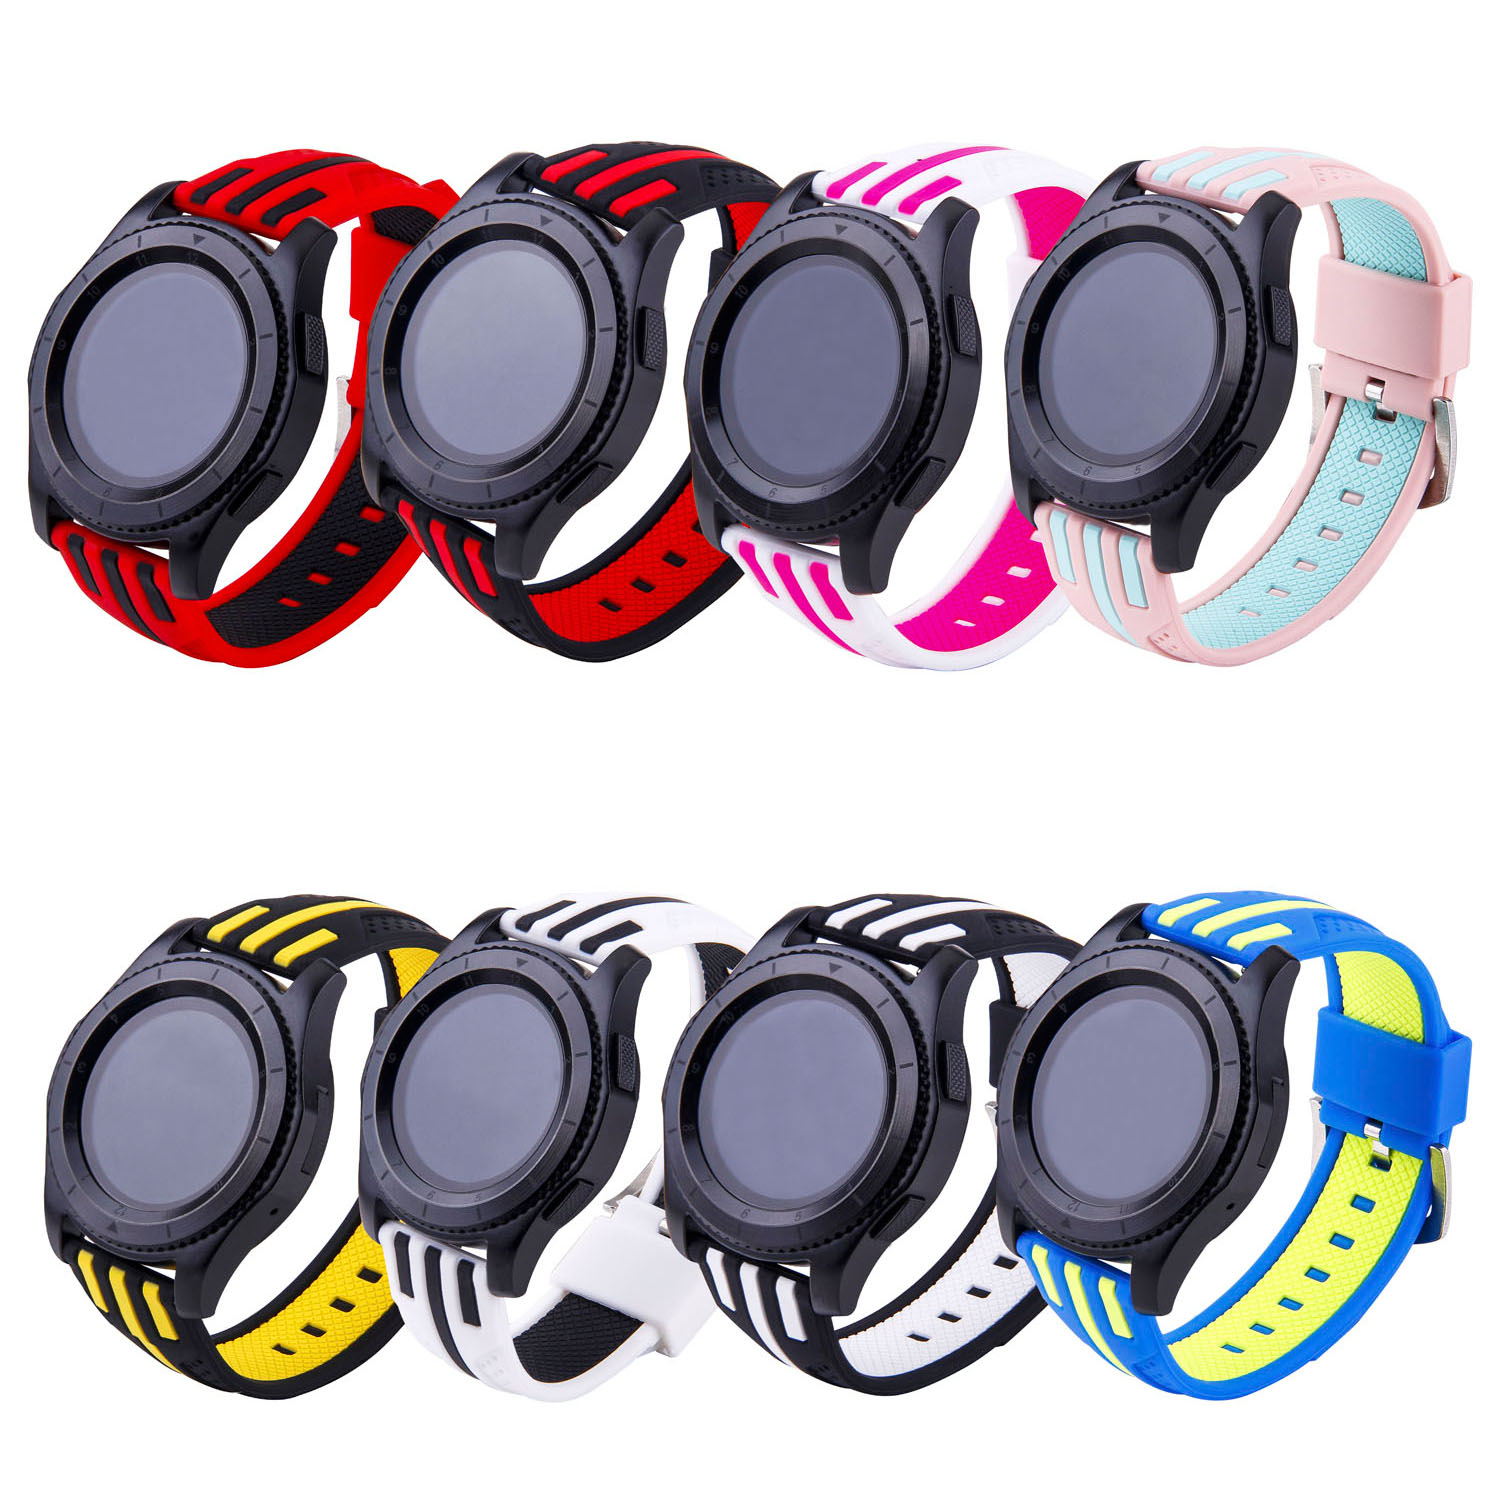 Stripe Silicone Strap for Samsung Gear S3 Band Replacement Bracelet for S3 R760 Classic S3 R770 Frontier Watch Band 22mm 18 colors rubber wrist strap for samsung gear s3 frontier silicone watch band for samsung gear s3 classic bracelet band 22mm